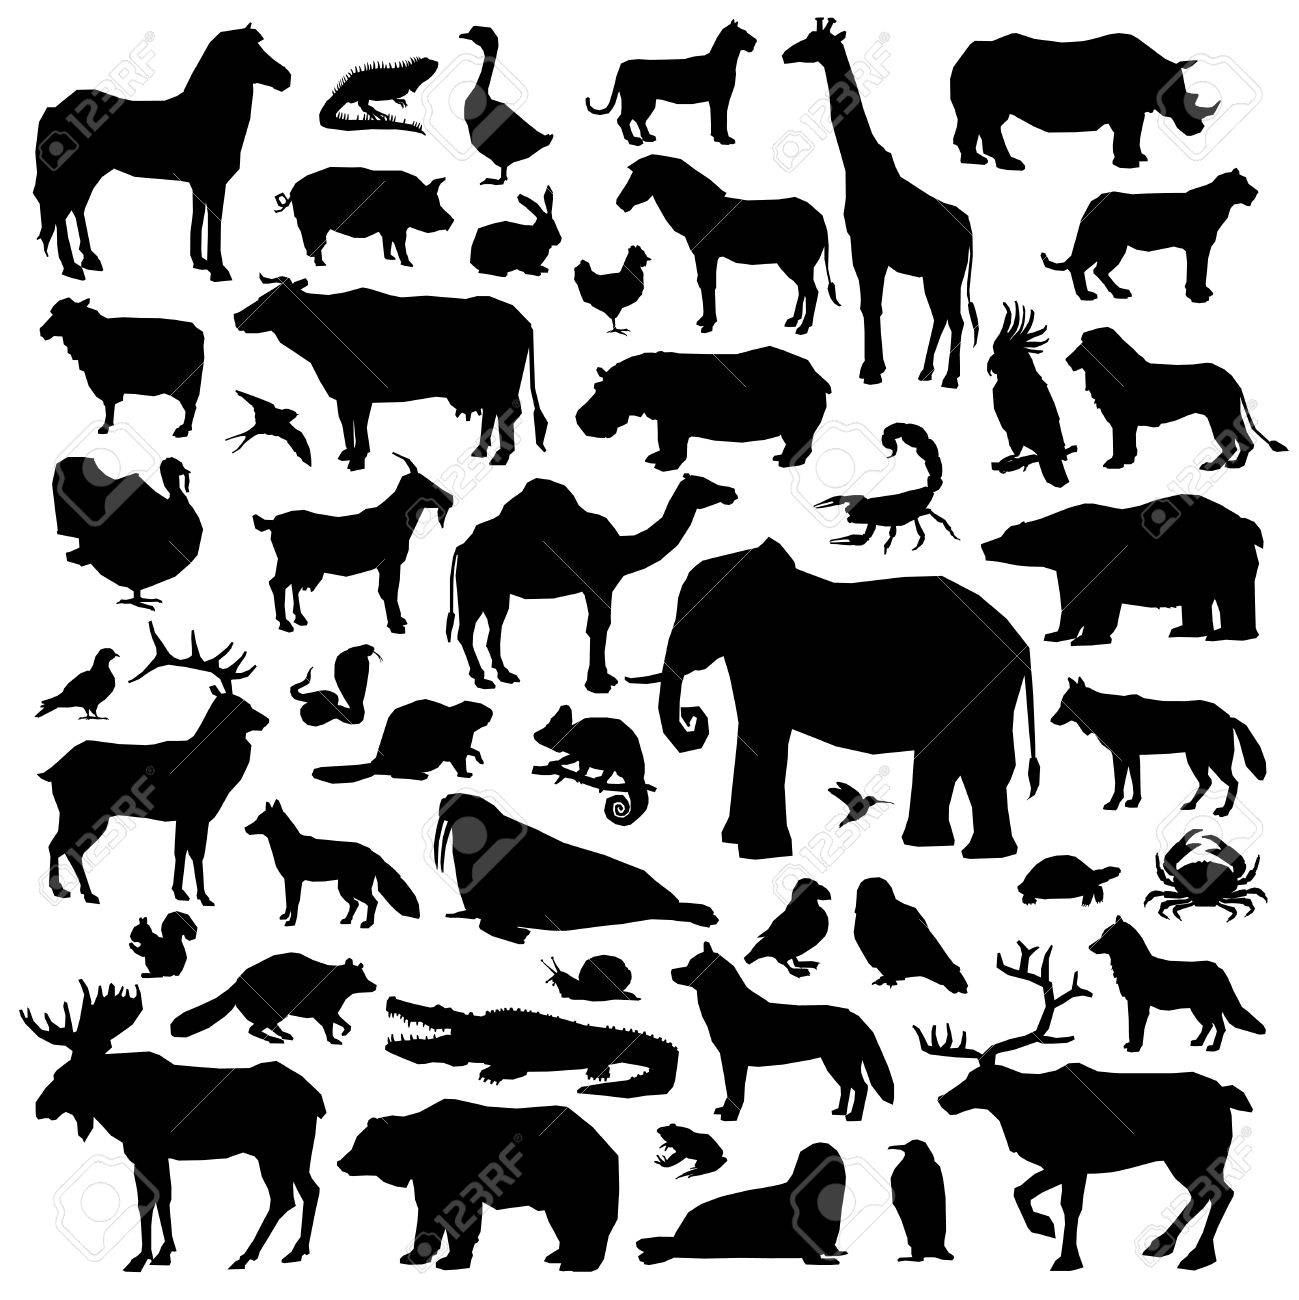 Wild and domestic animals and birds living in various climatic zones big black silhouette set isolated on white background vector illustration - 64668061